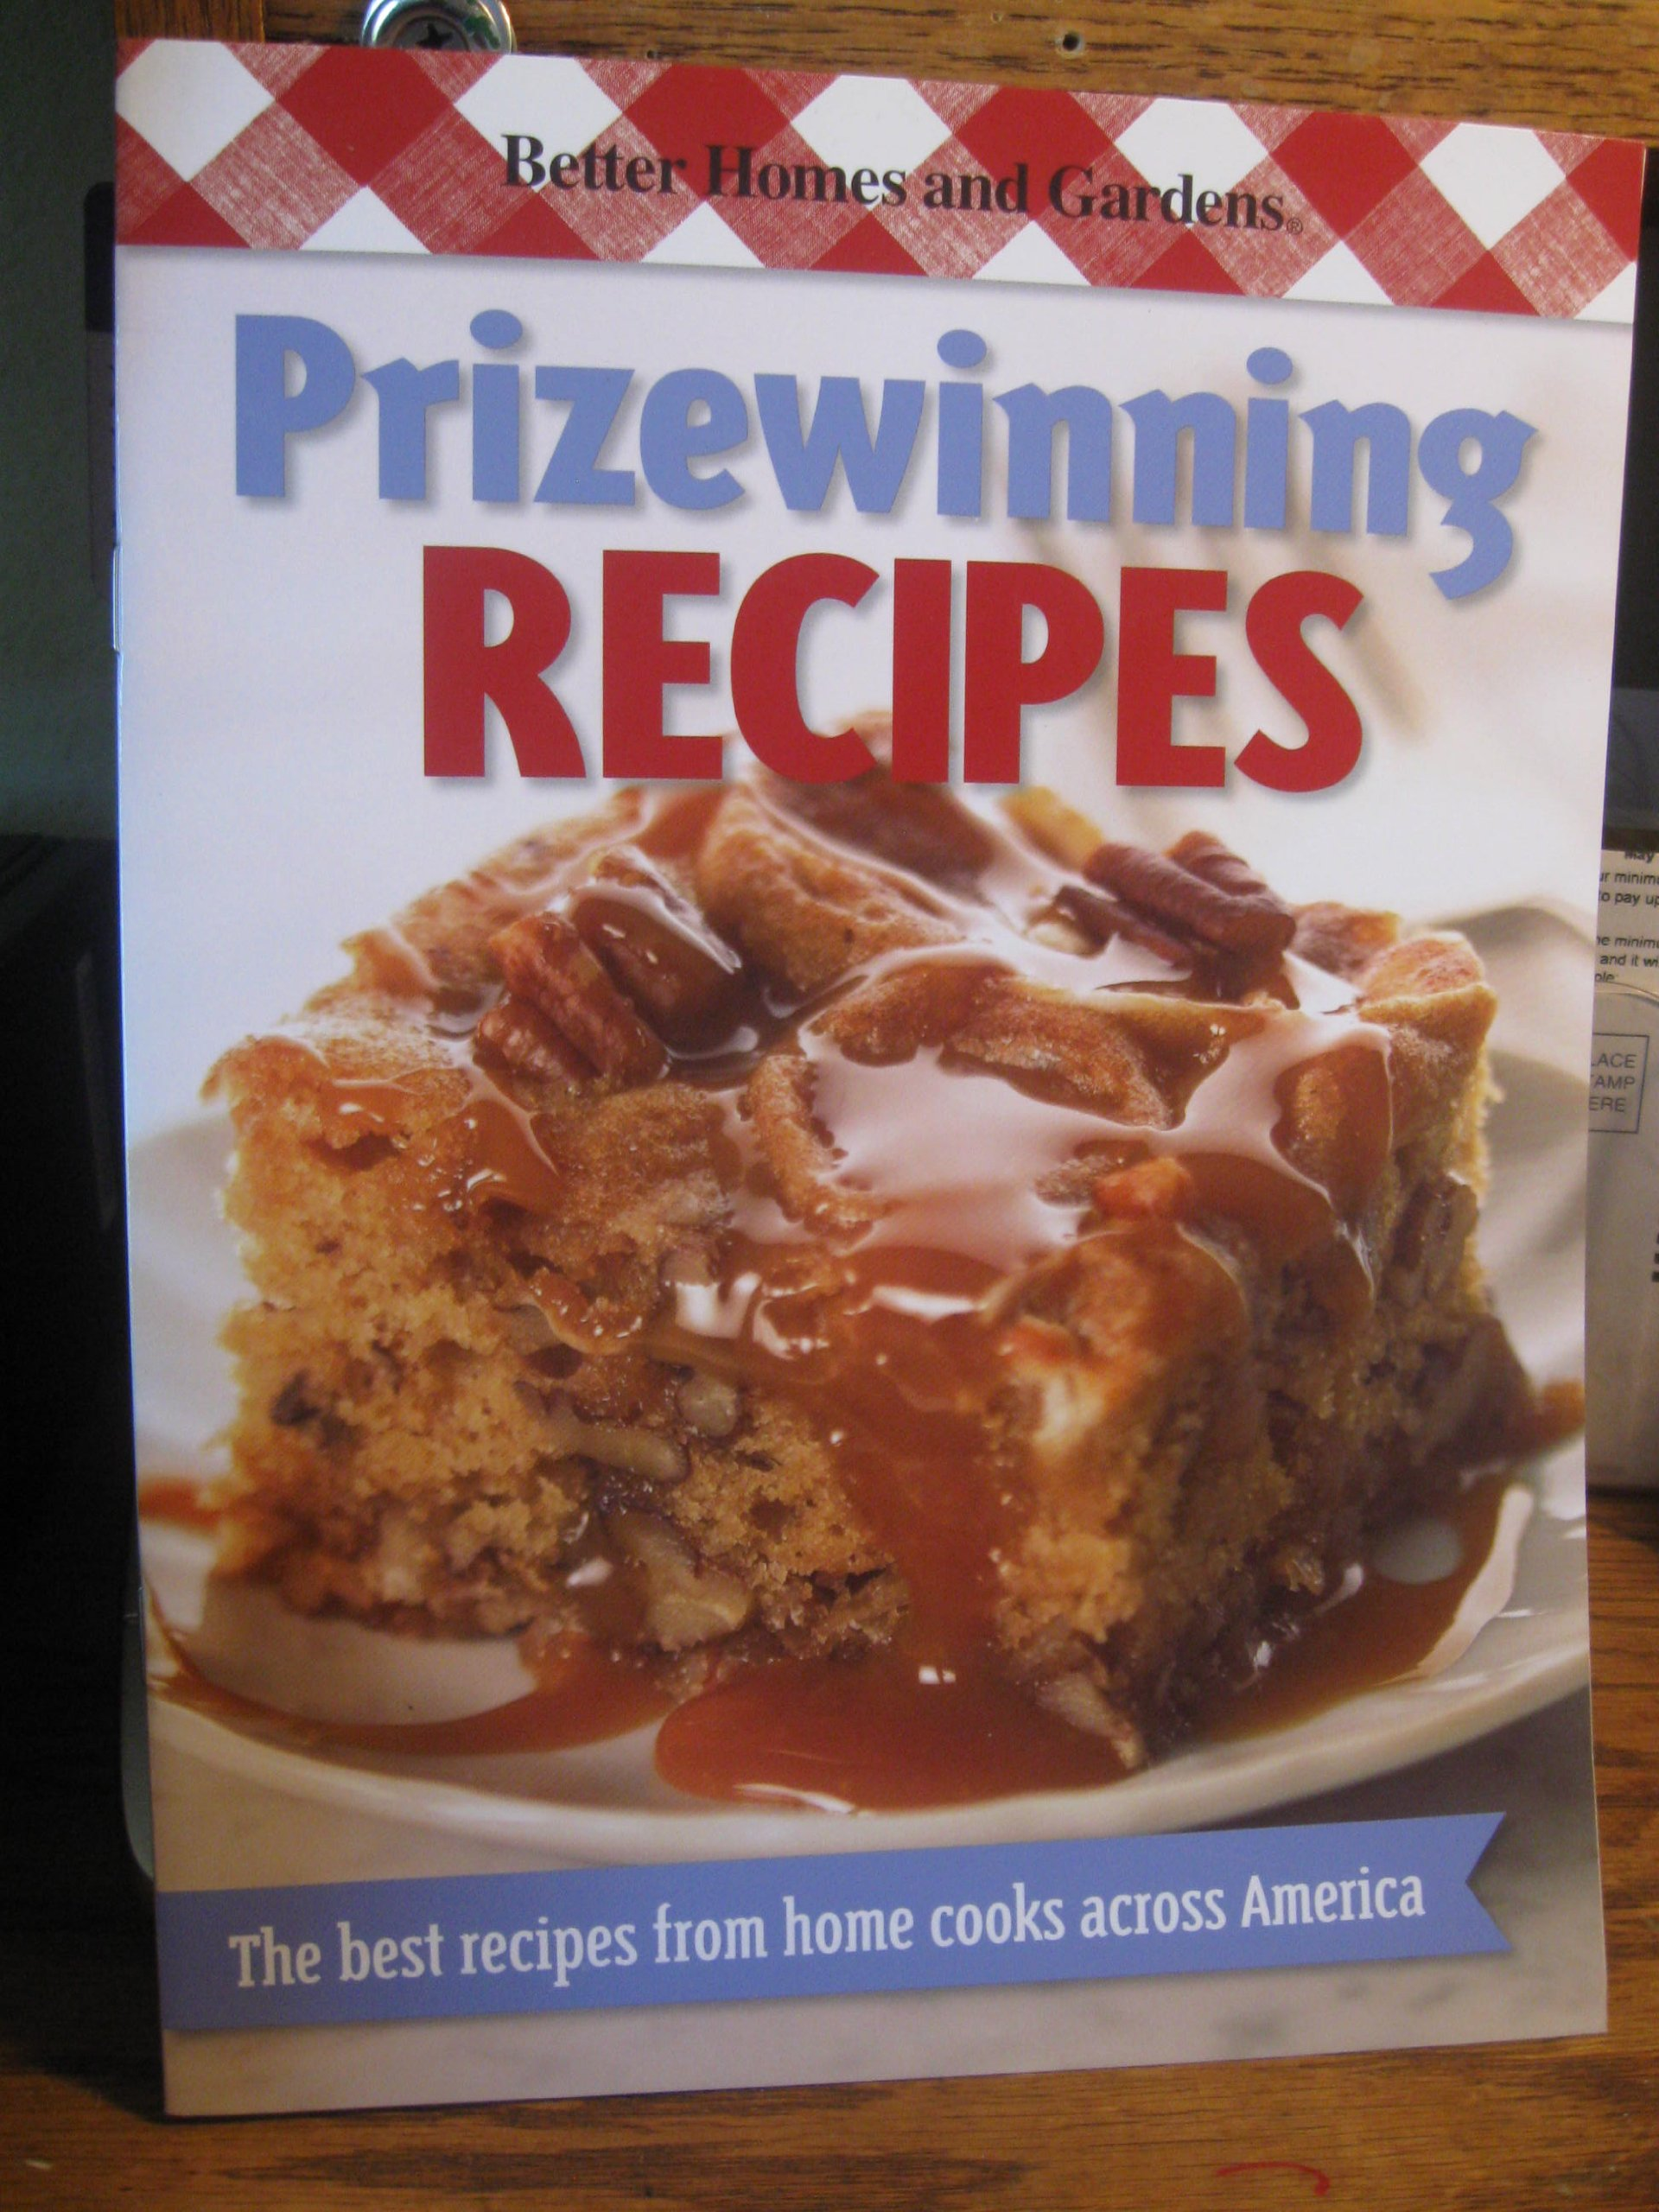 Better Homes and Gardens New Cook Book, Limited Edition: Prizewinning Recipes Better Homes & Gardens: Amazon.es: Gayle Butler, Better Homes and Gardens, ...